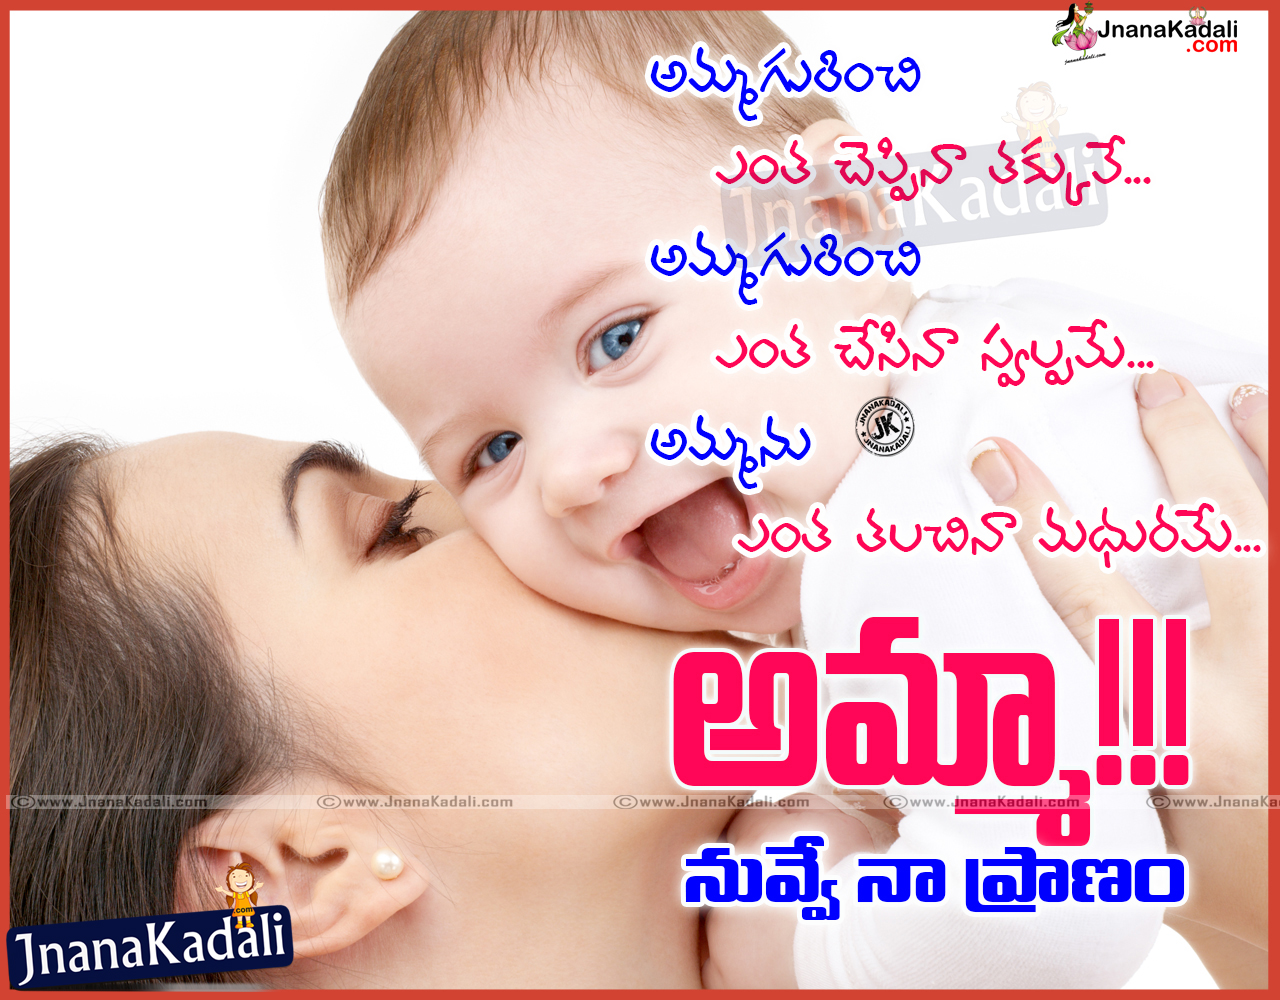 A Mothers Love Quotes 2 Telugu Quotations About Mother's Love And Care  Jnana Kadali